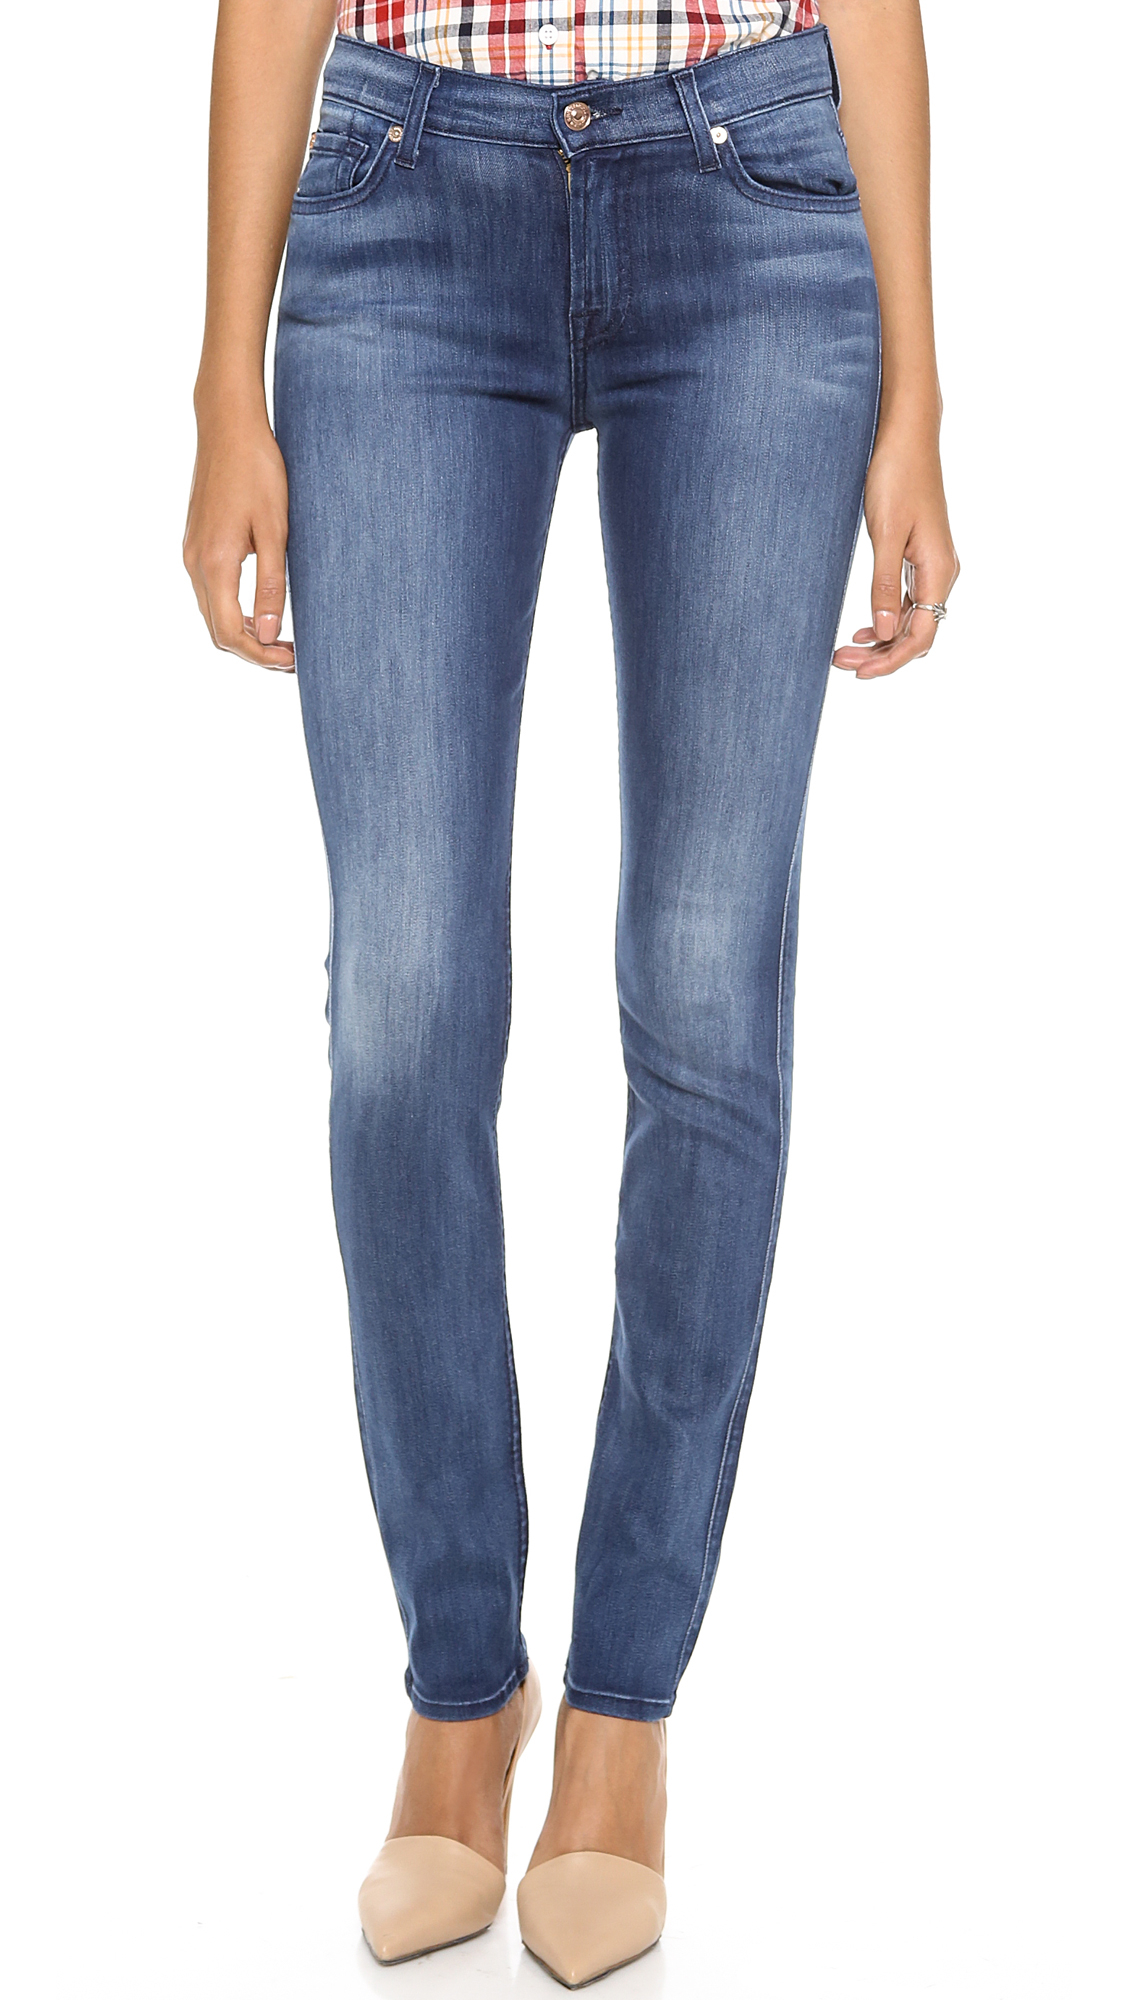 lyst 7 for all mankind high rise roxanne jeans in blue. Black Bedroom Furniture Sets. Home Design Ideas